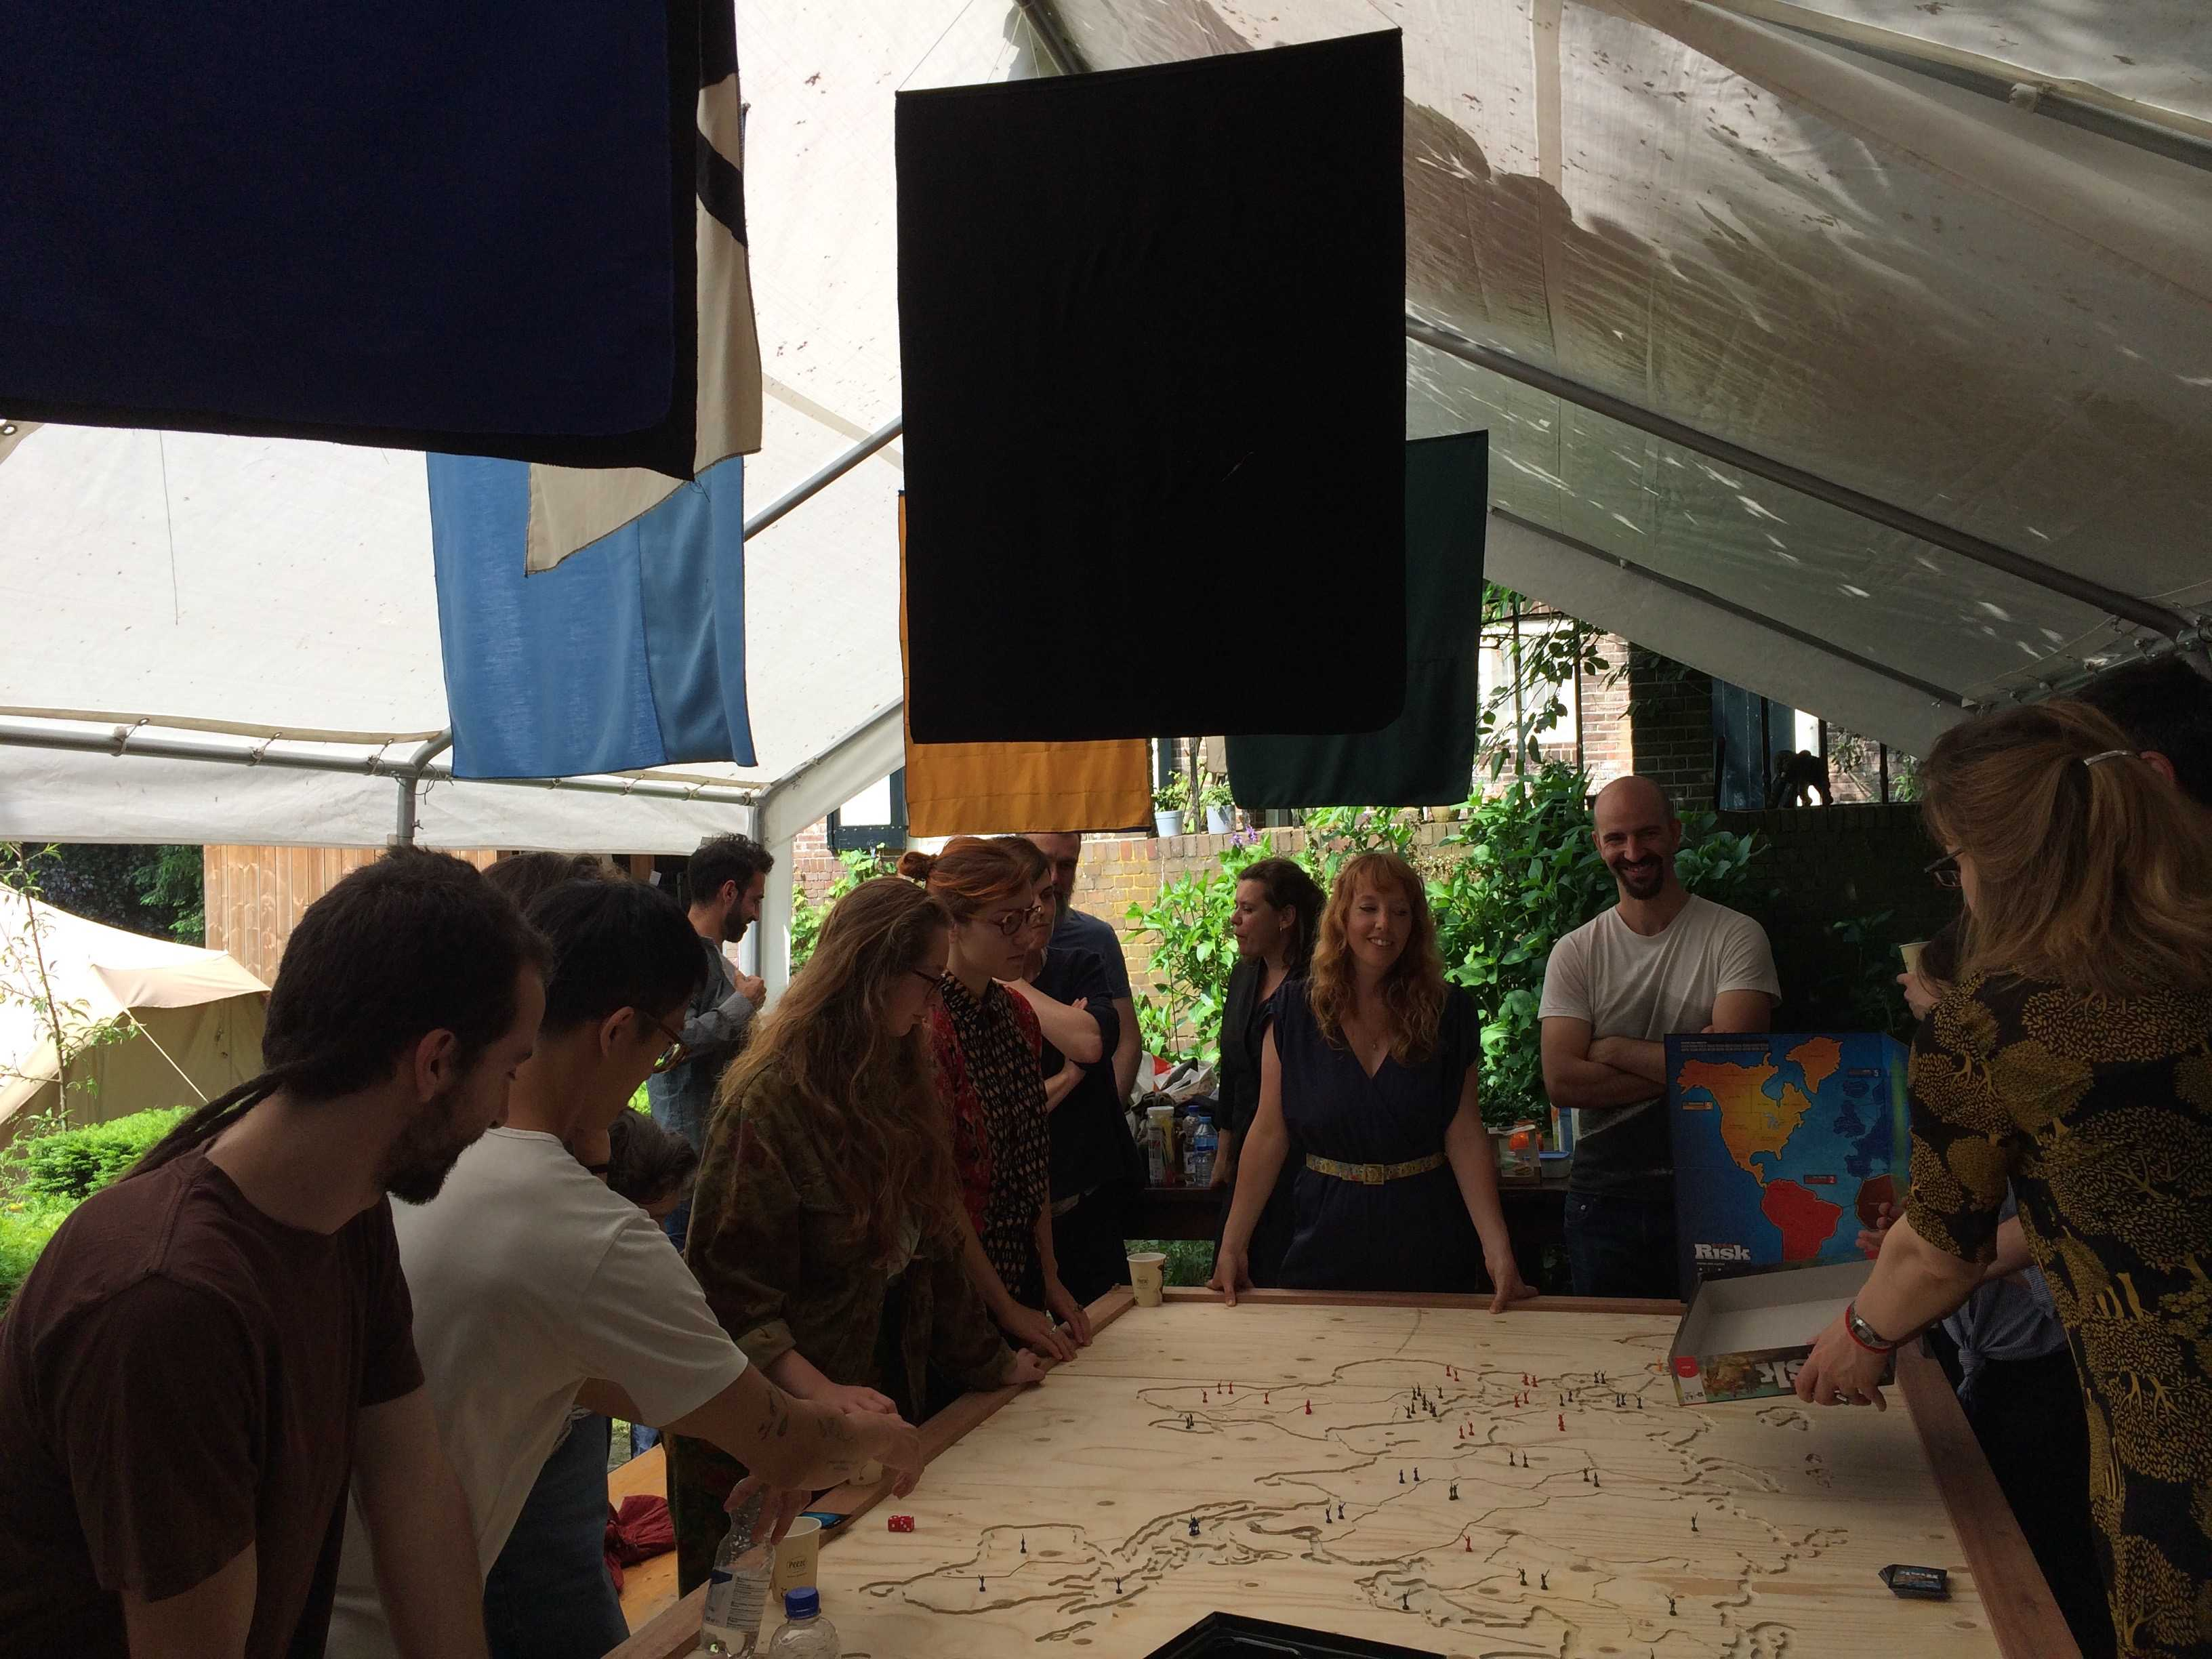 """I left my pdf in Bandung"" presents participants of the Location Location Location research group of the Roaming Academy (led by Sarah Pierce and Tirdad Zolghadr): an epic ongoing game of Risk."